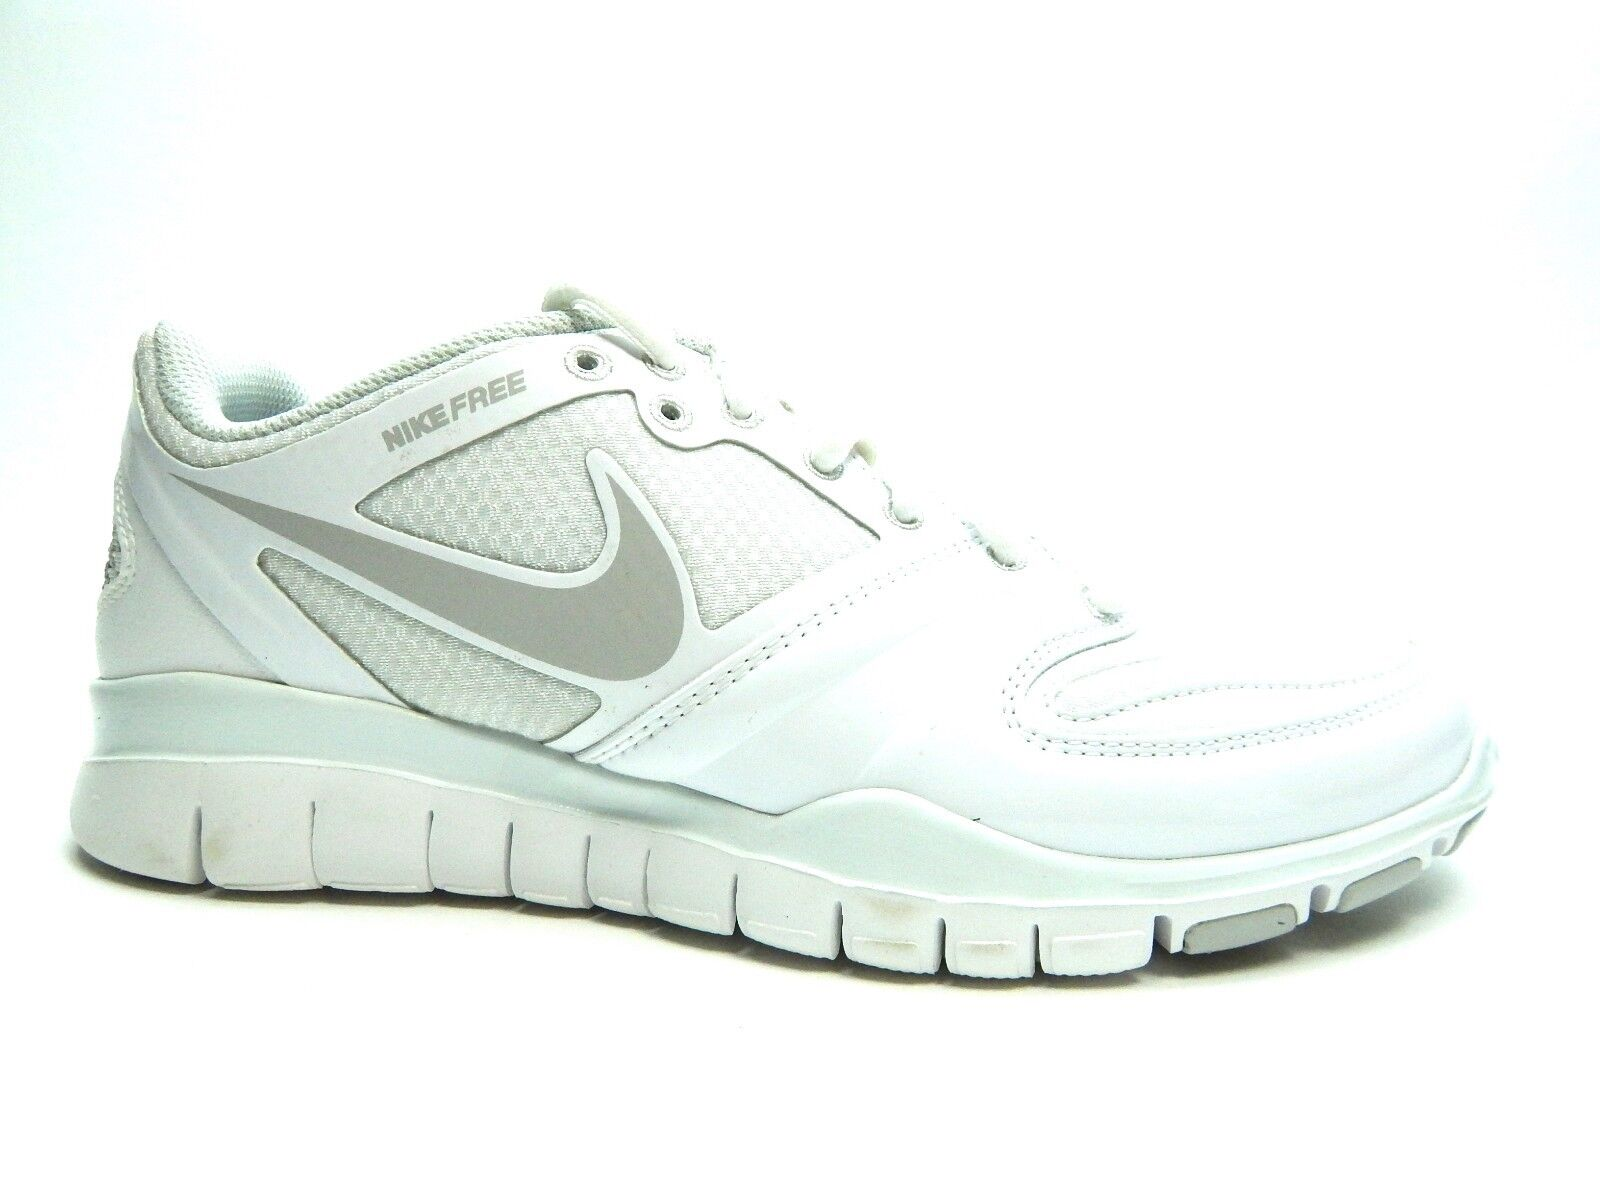 new products d9633 a8dc8 ... NIKE FREE HYPER CHEER WHITE WHITE WHITE NEUTRAL GREY WOMEN SHOES SIZE 5  TO 12 58bd6b ...